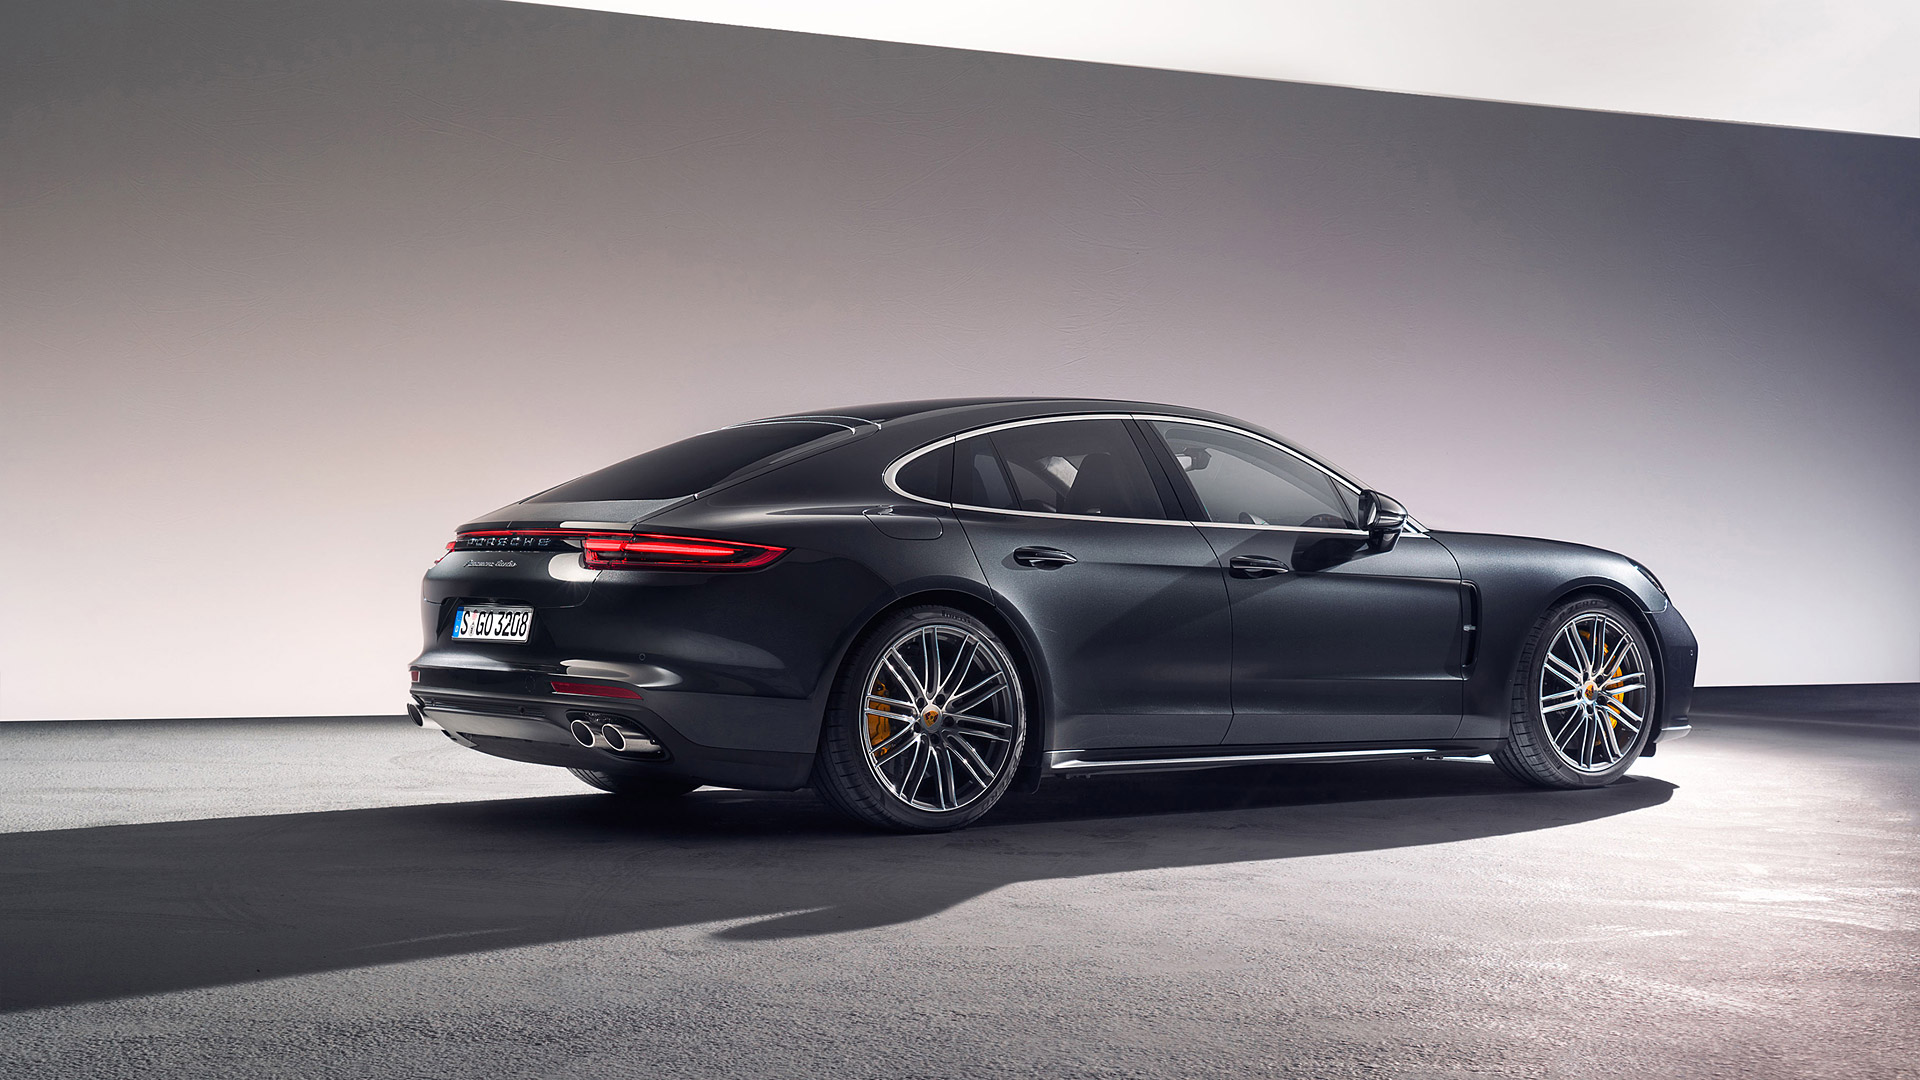 2017 Porsche Panamera Turbo Wallpapers HD Images   WSupercars 1920x1080